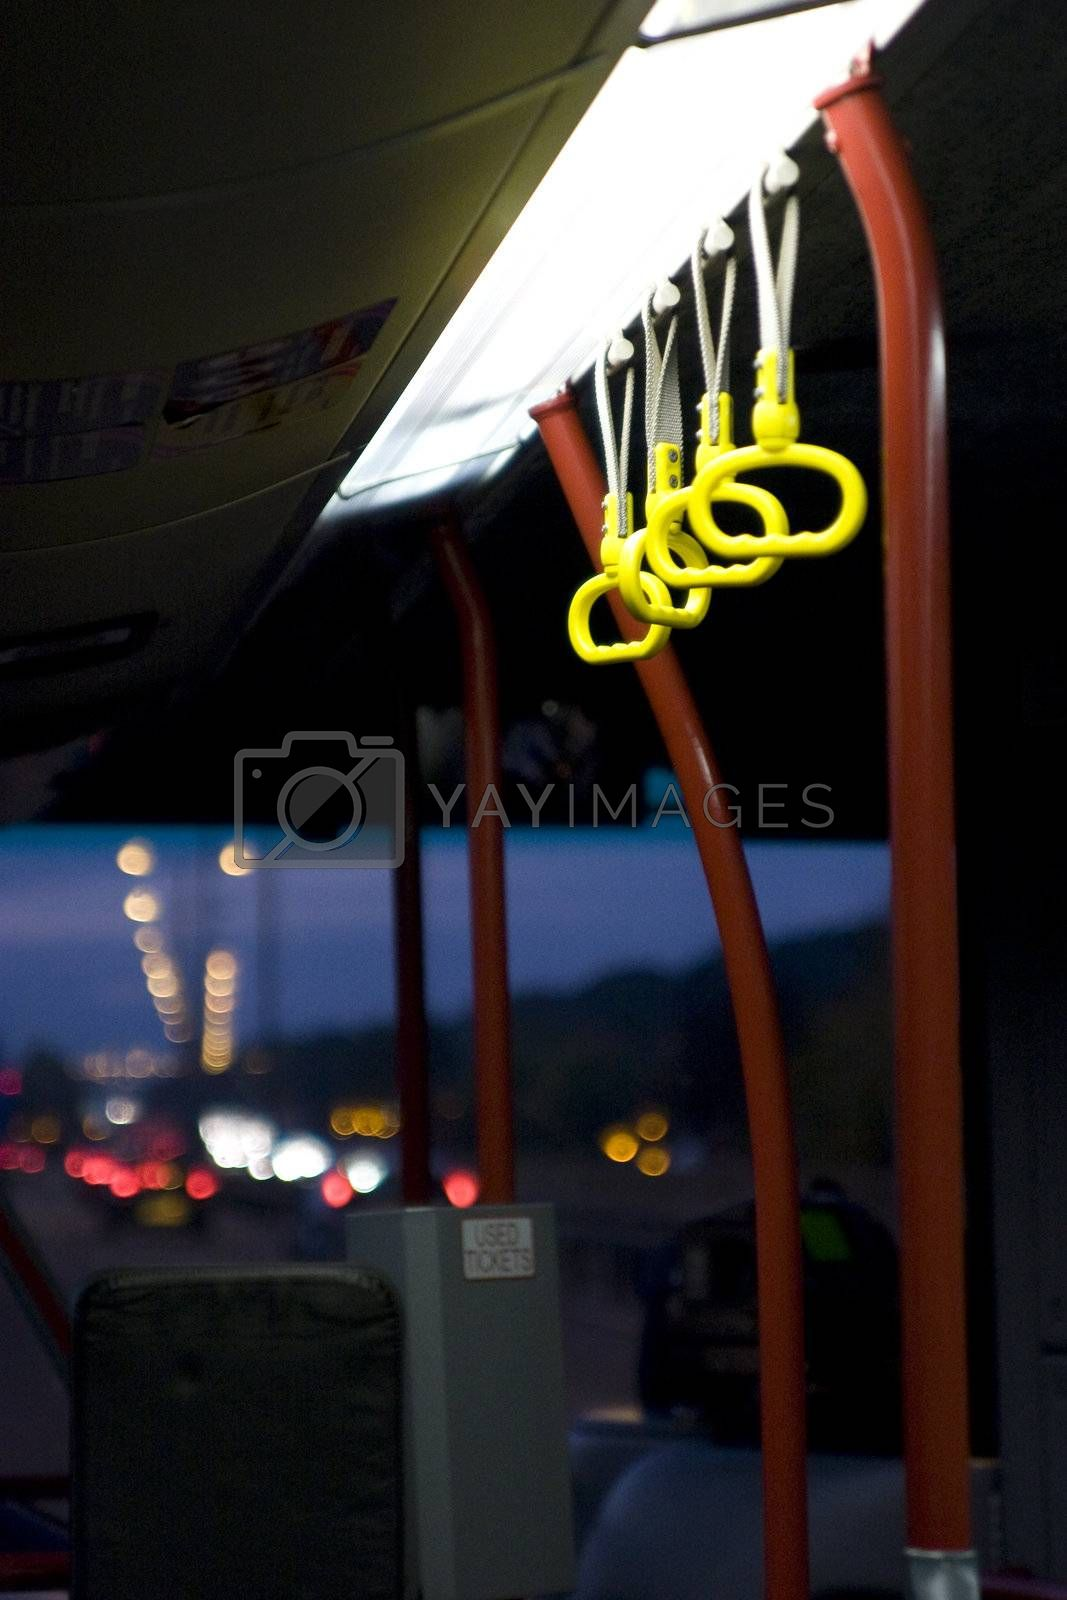 Bus interior showing handles and the road ahead from the perspective of a traveller